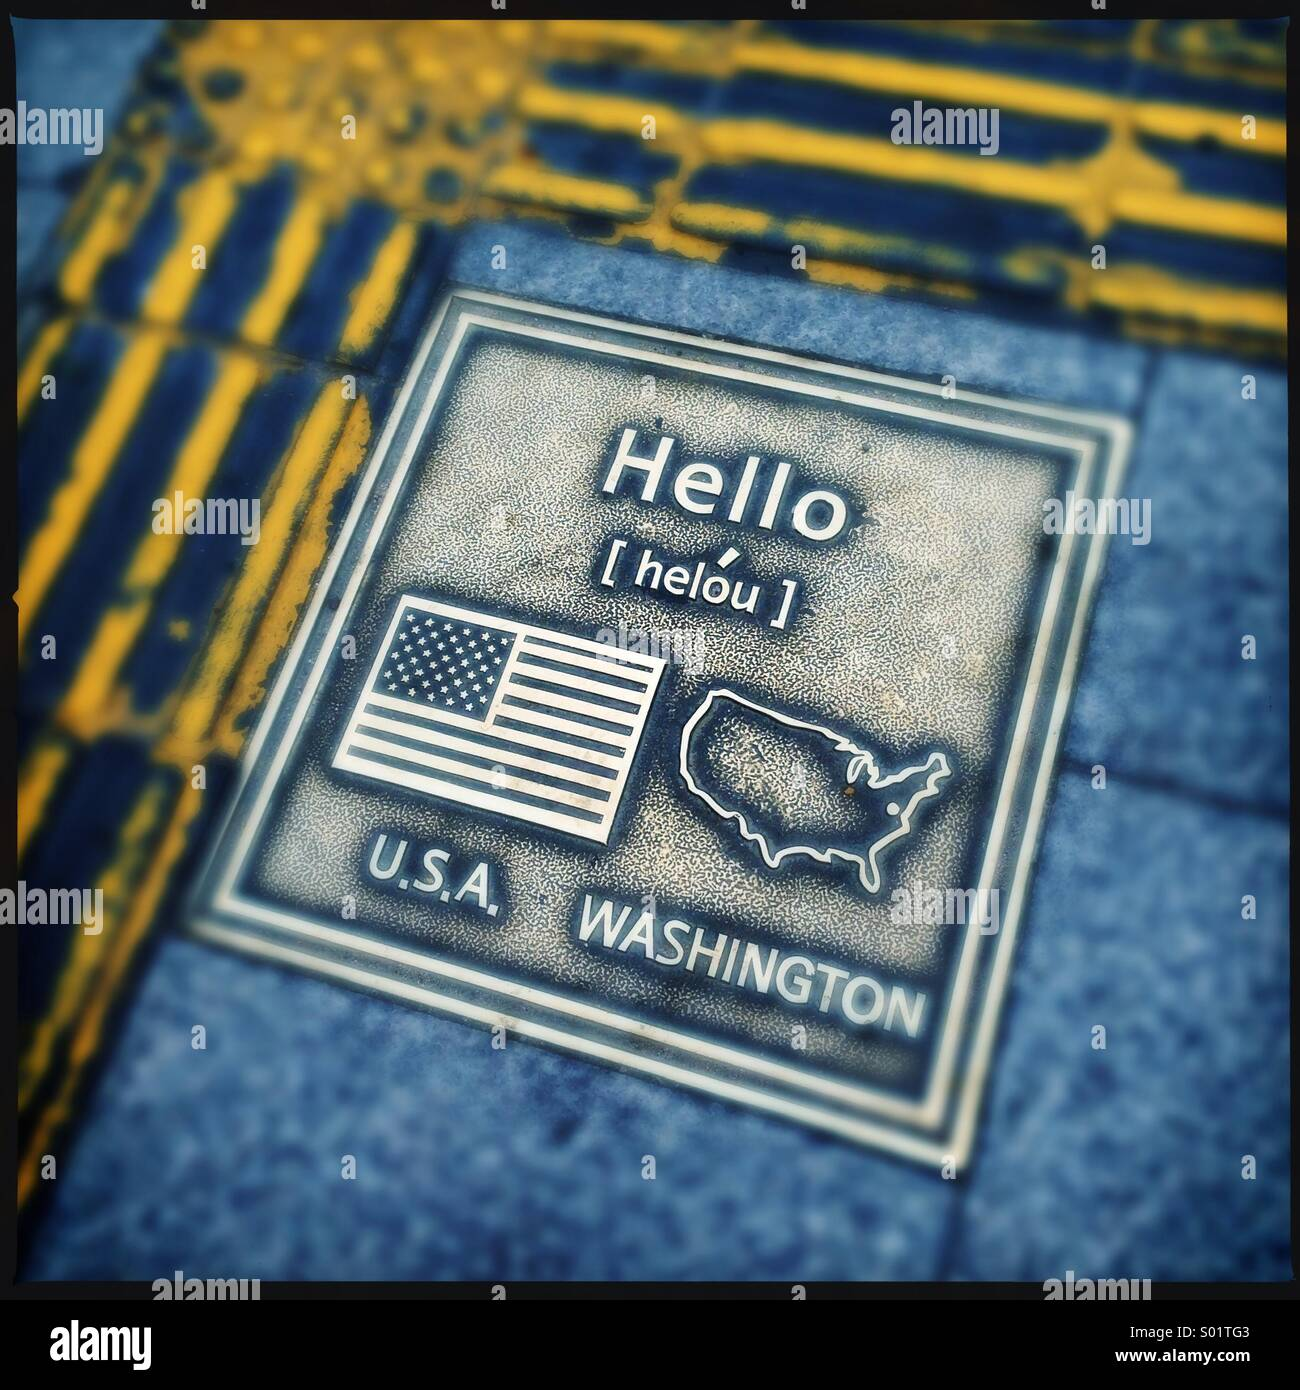 Brass plate on sidewalk showing hello ,flag and map. Seoul,Korea - Stock Image